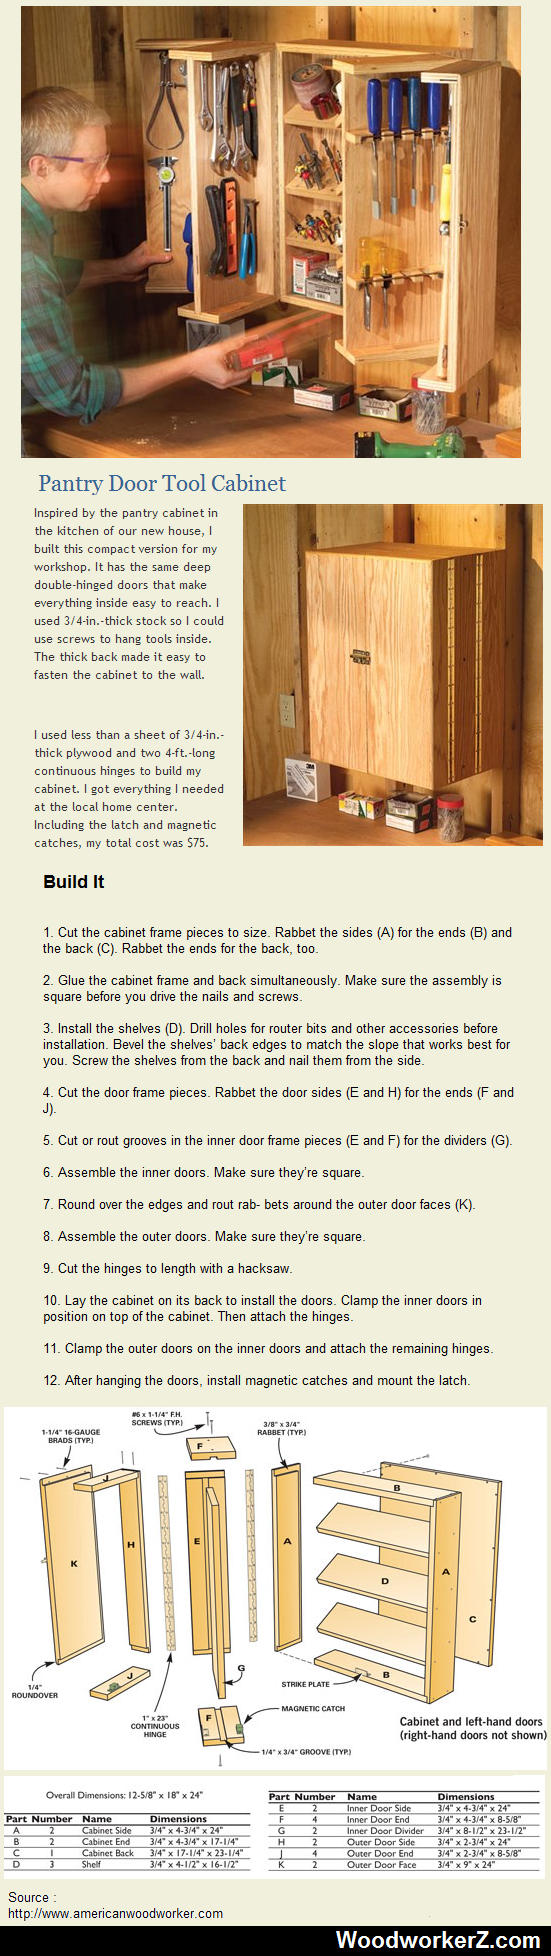 Pantry Door Tool Cabinet This is the plan I have. Not sure how the doors close without some cutout. & Pantry Door Tool Cabinet | woodshop ideas | Pinterest | Tool ...